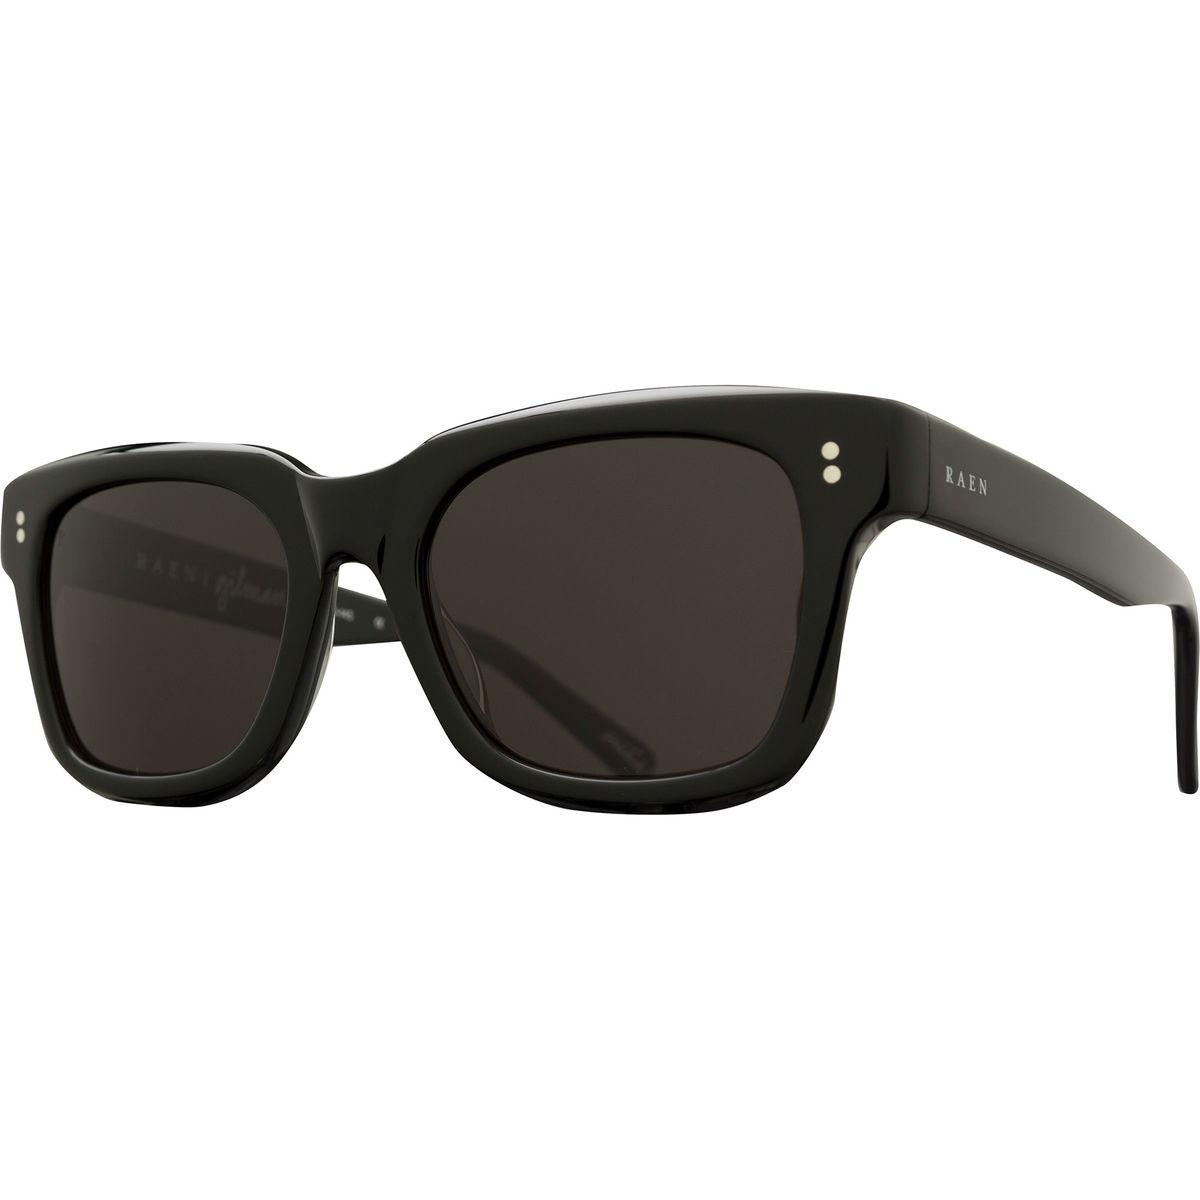 7c587cae513 Raen - Black Gilman Sunglasses for Men - Lyst. View fullscreen